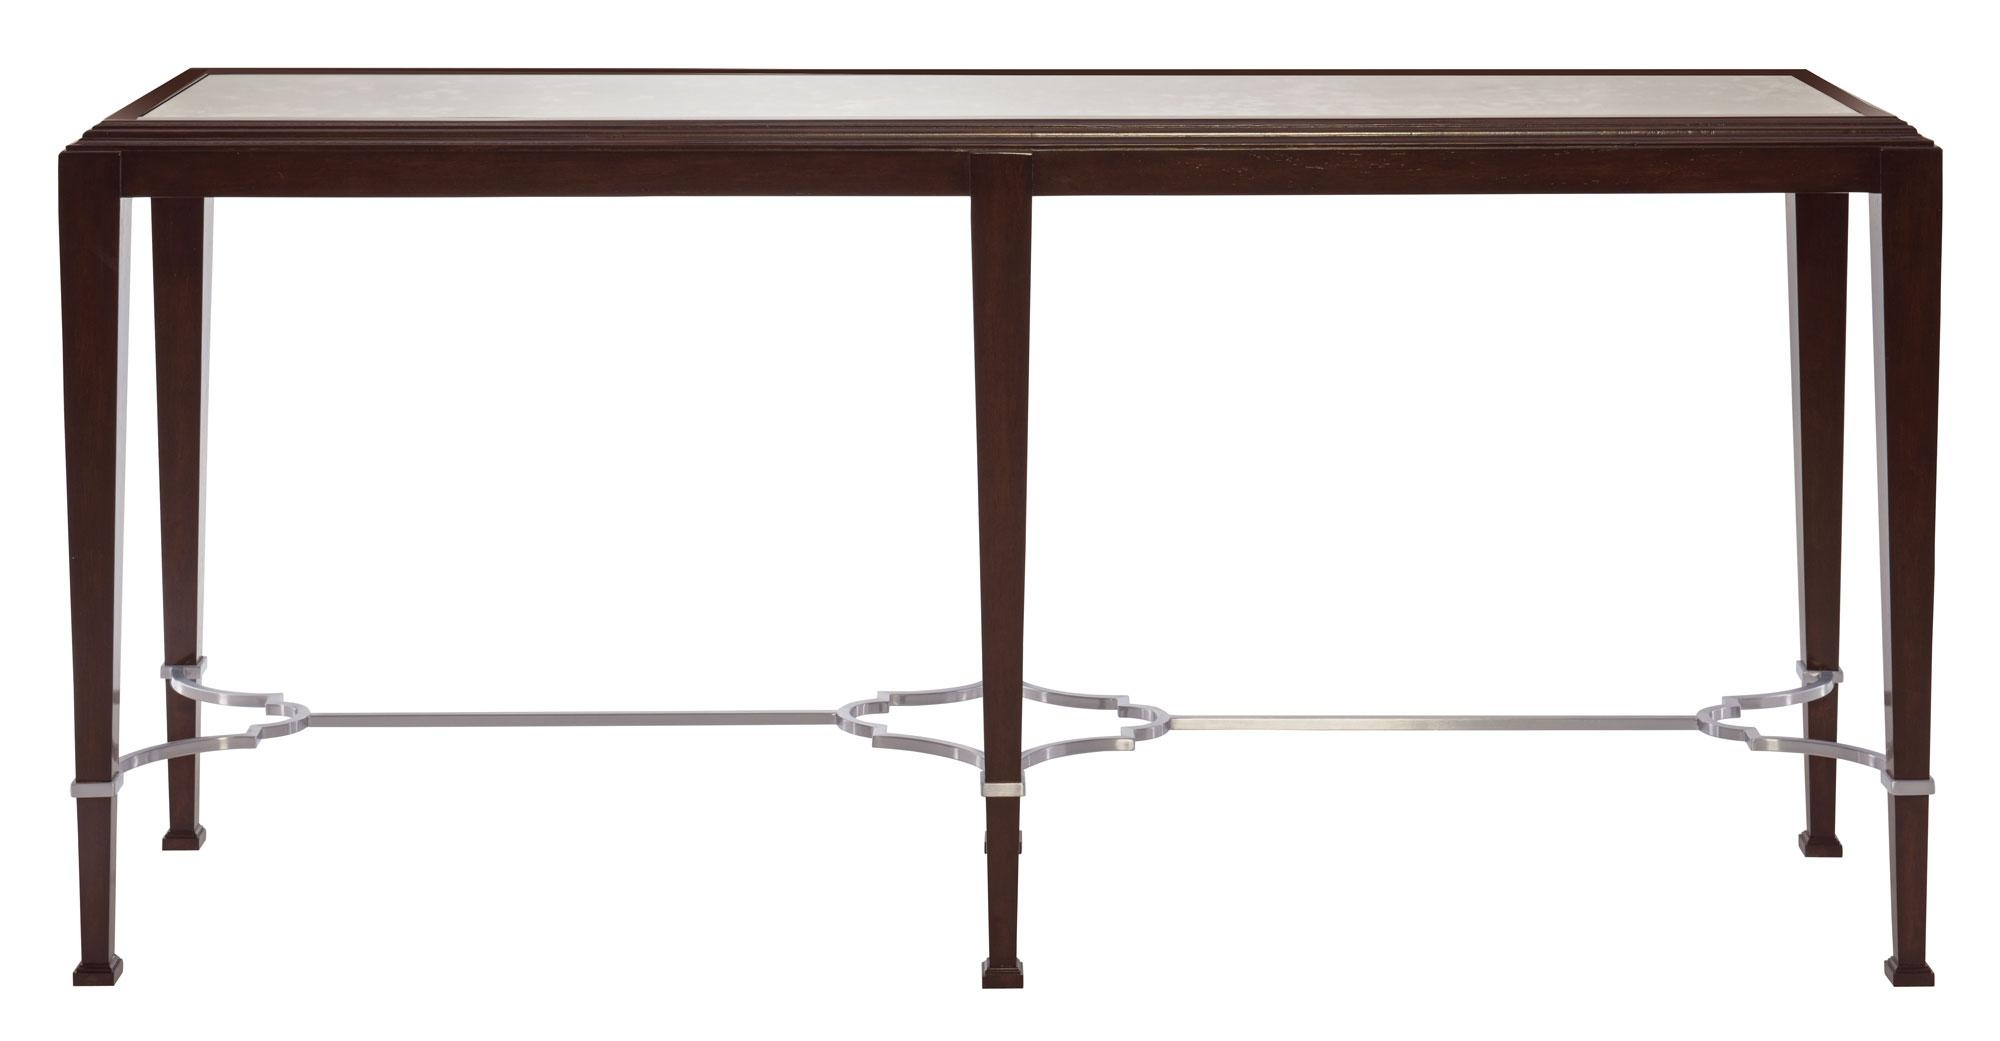 Console Tables | Bernhardt Within Bernhardt Console Tables (View 9 of 20)